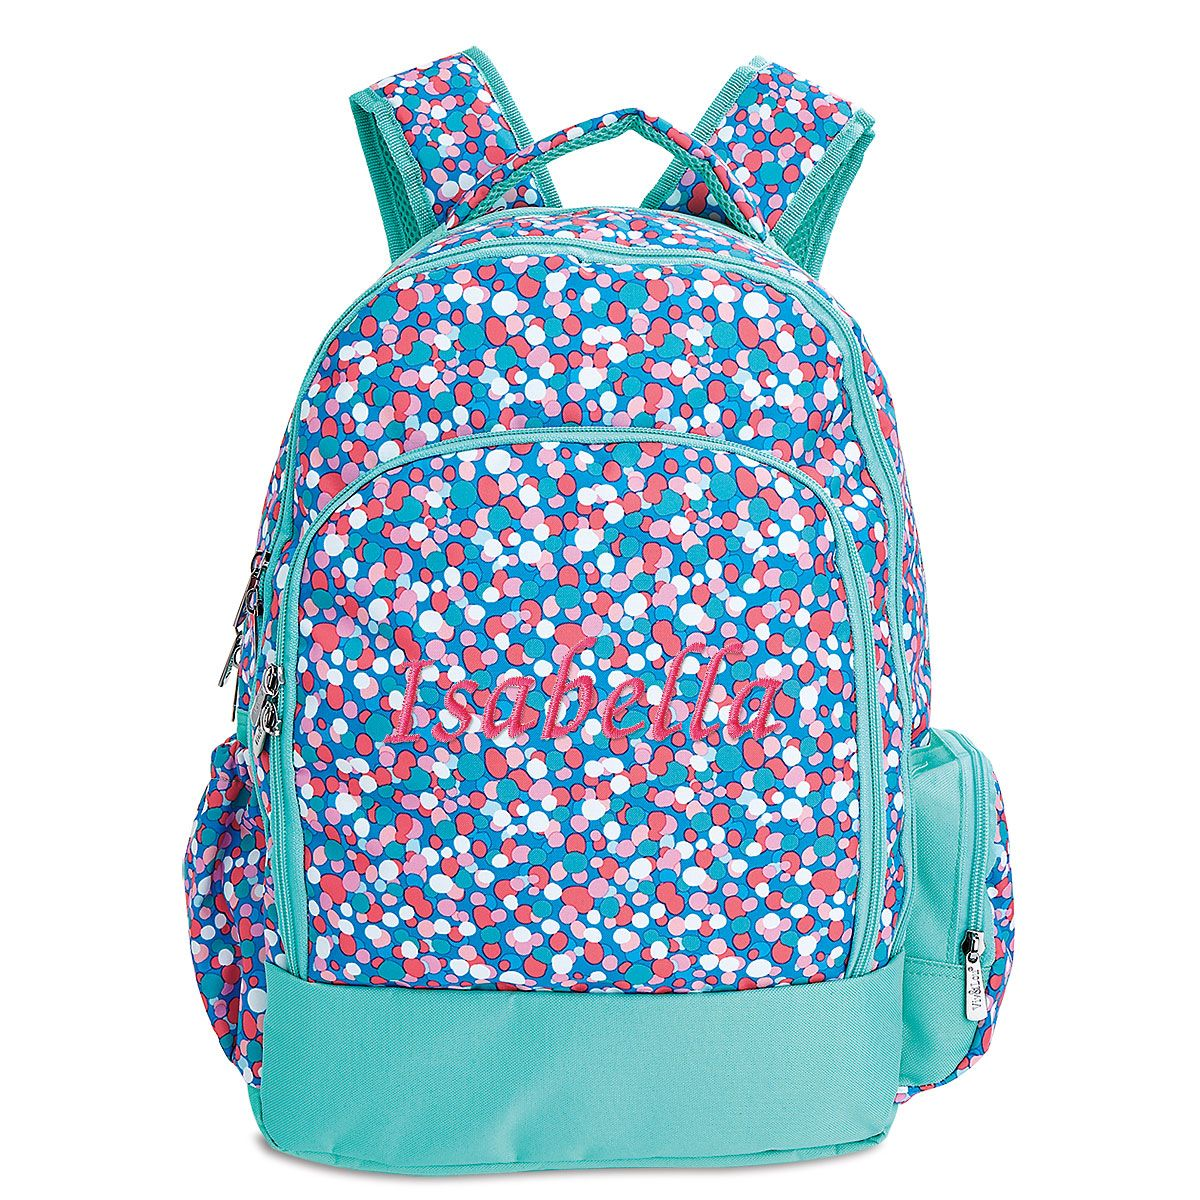 Personalized Confetti Pop Backpack – Name